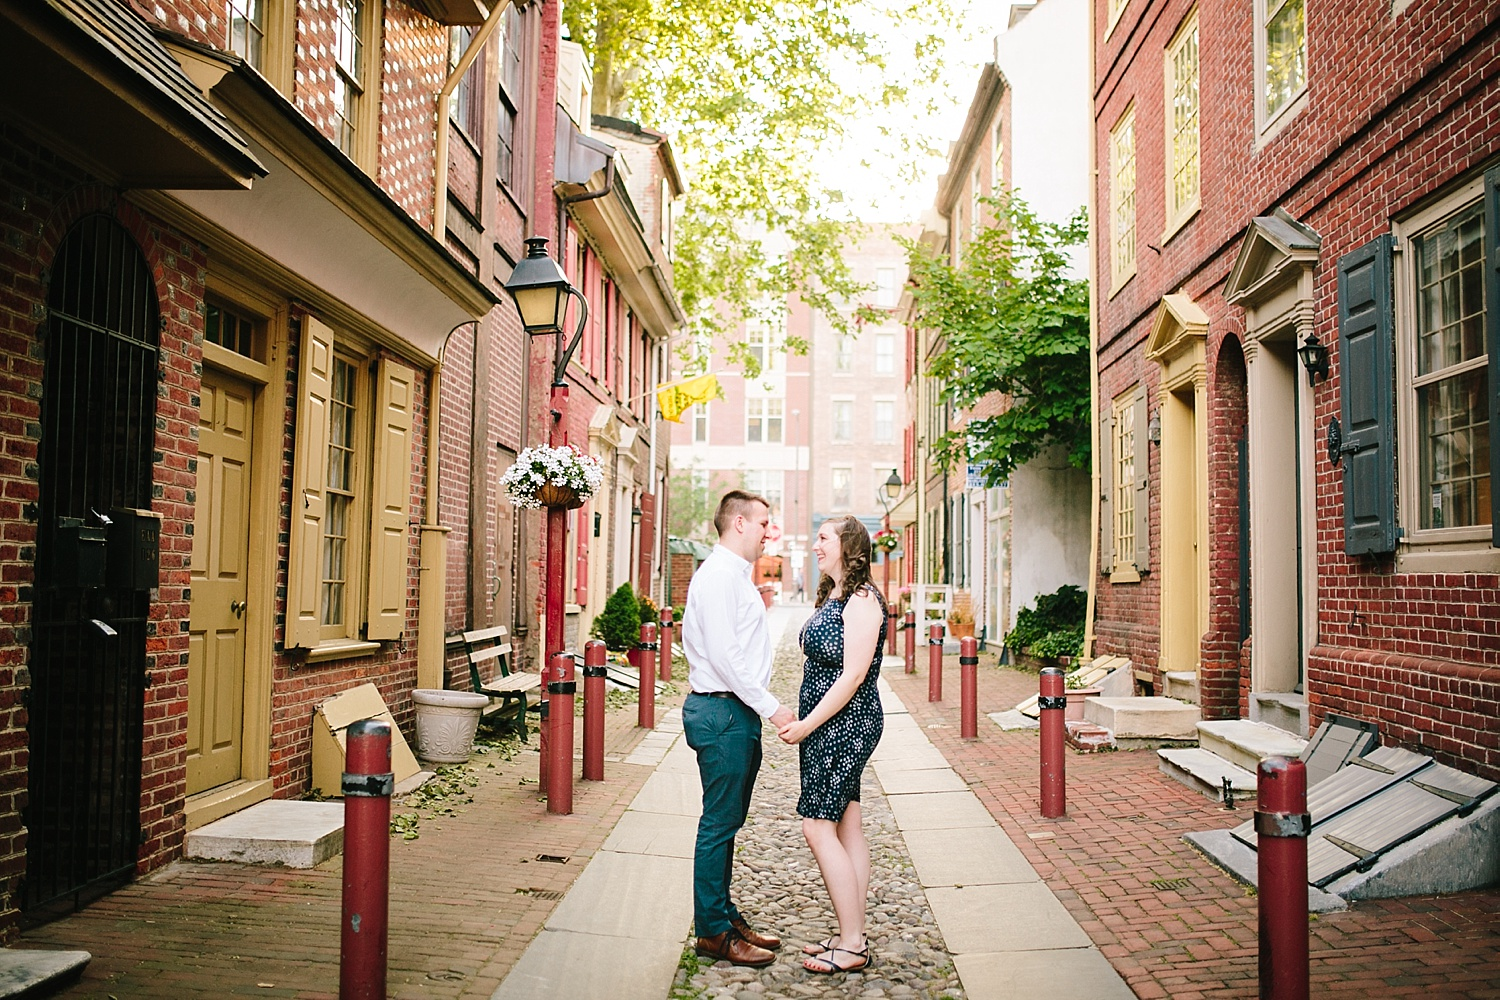 lizandbrandon_oldcity_philadelphia_elfrethsalley_engagement_session_image005.jpg